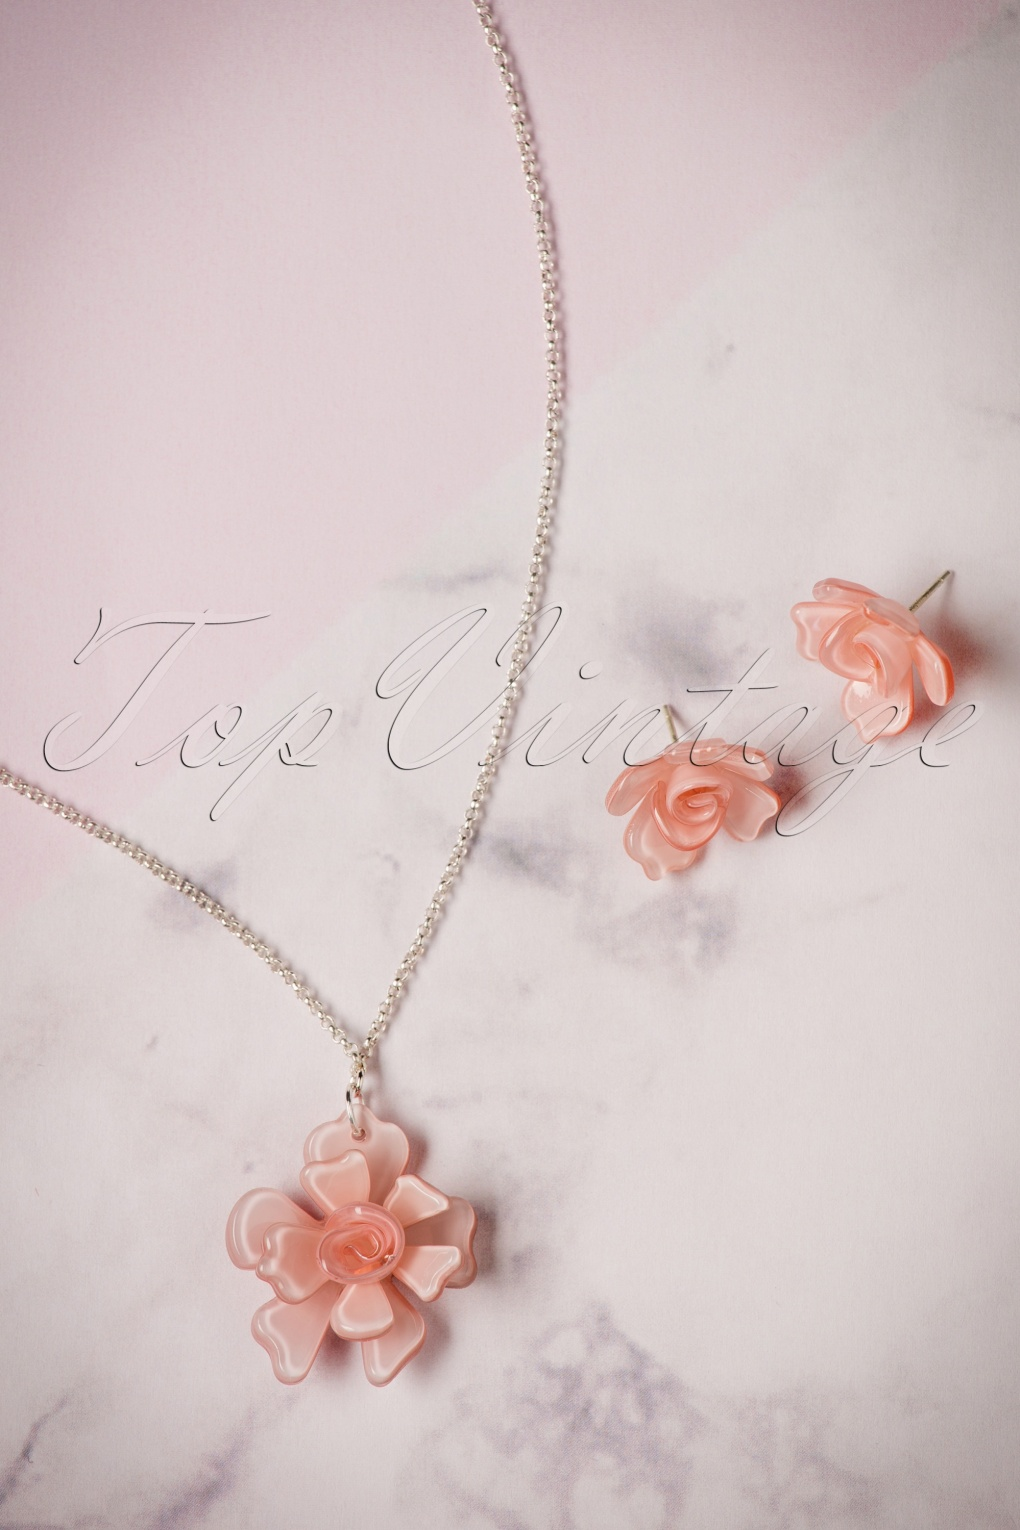 ashleeartis disney necklace fullxfull name il shop style